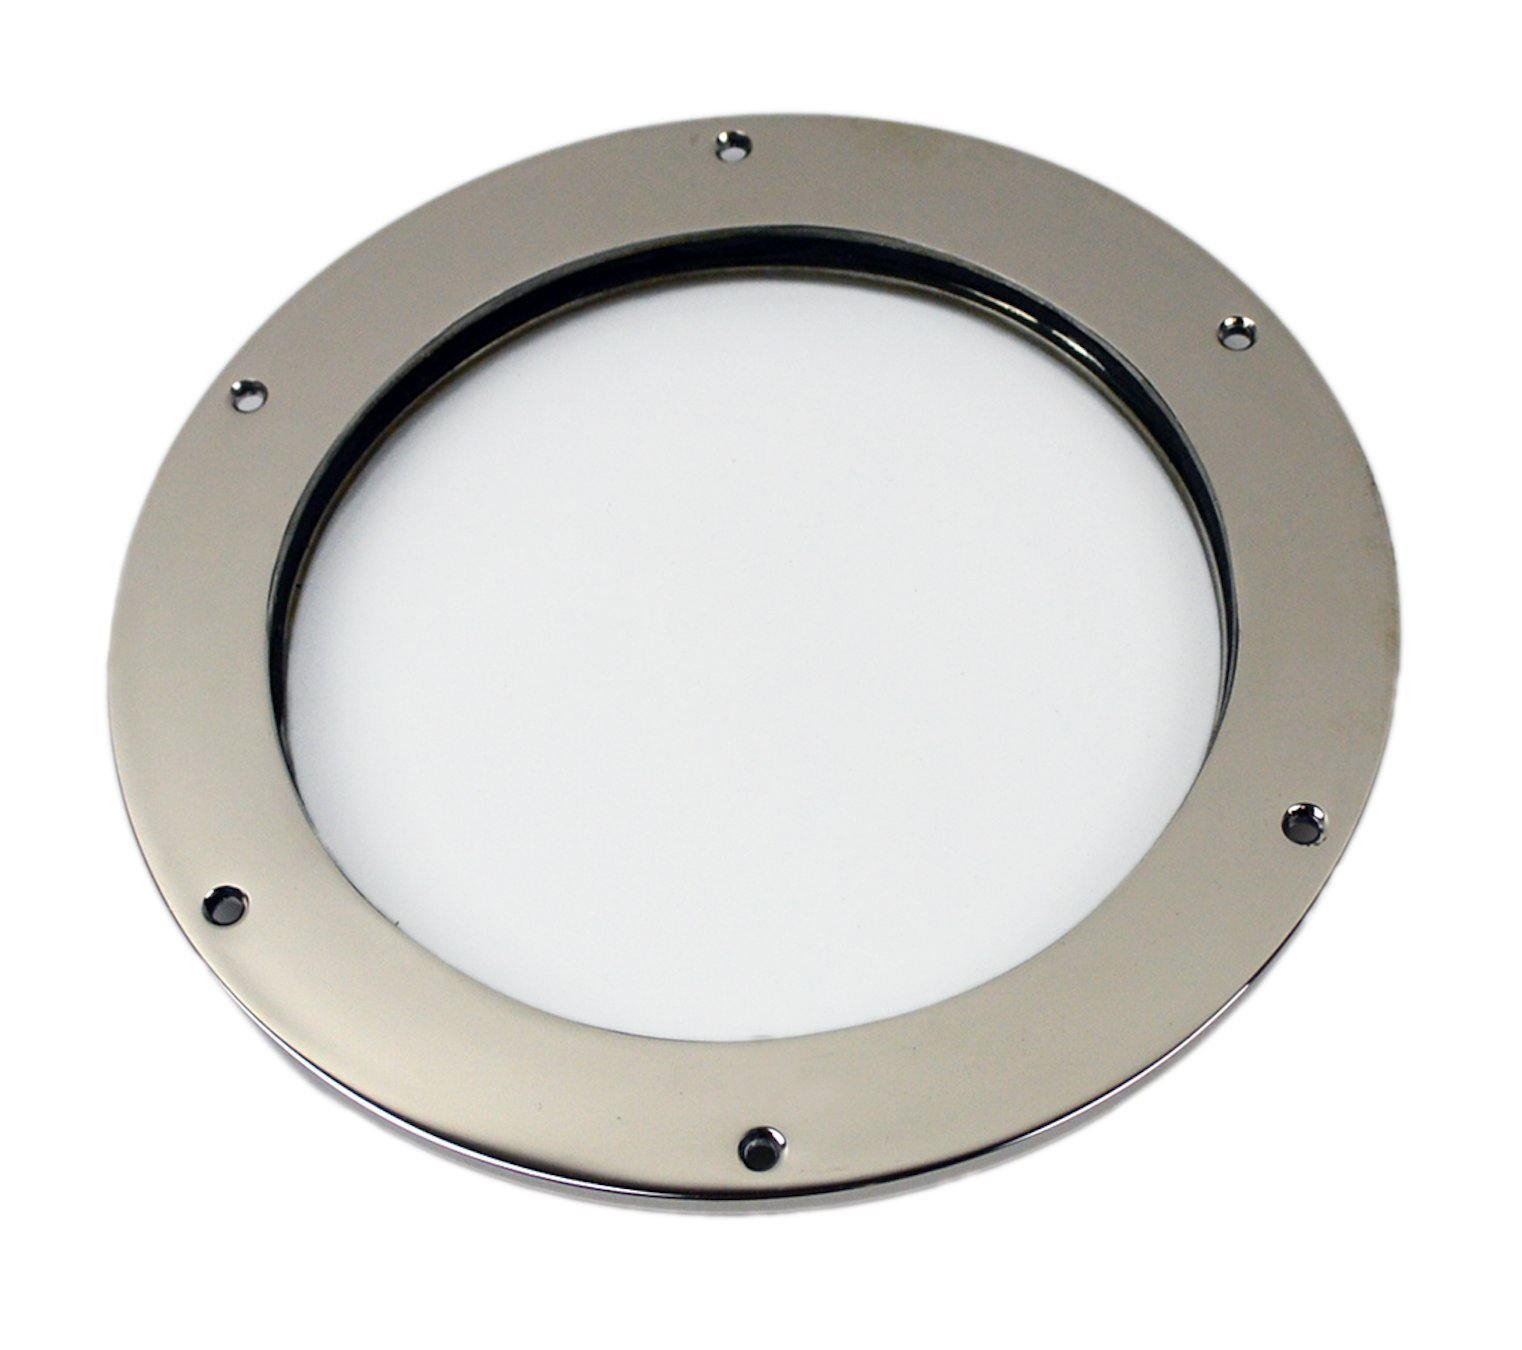 "Nautical Tropical Imports 8"" Nickel Finish over Solid Brass Deadlight Porthole Window - Wall Mount Decor"